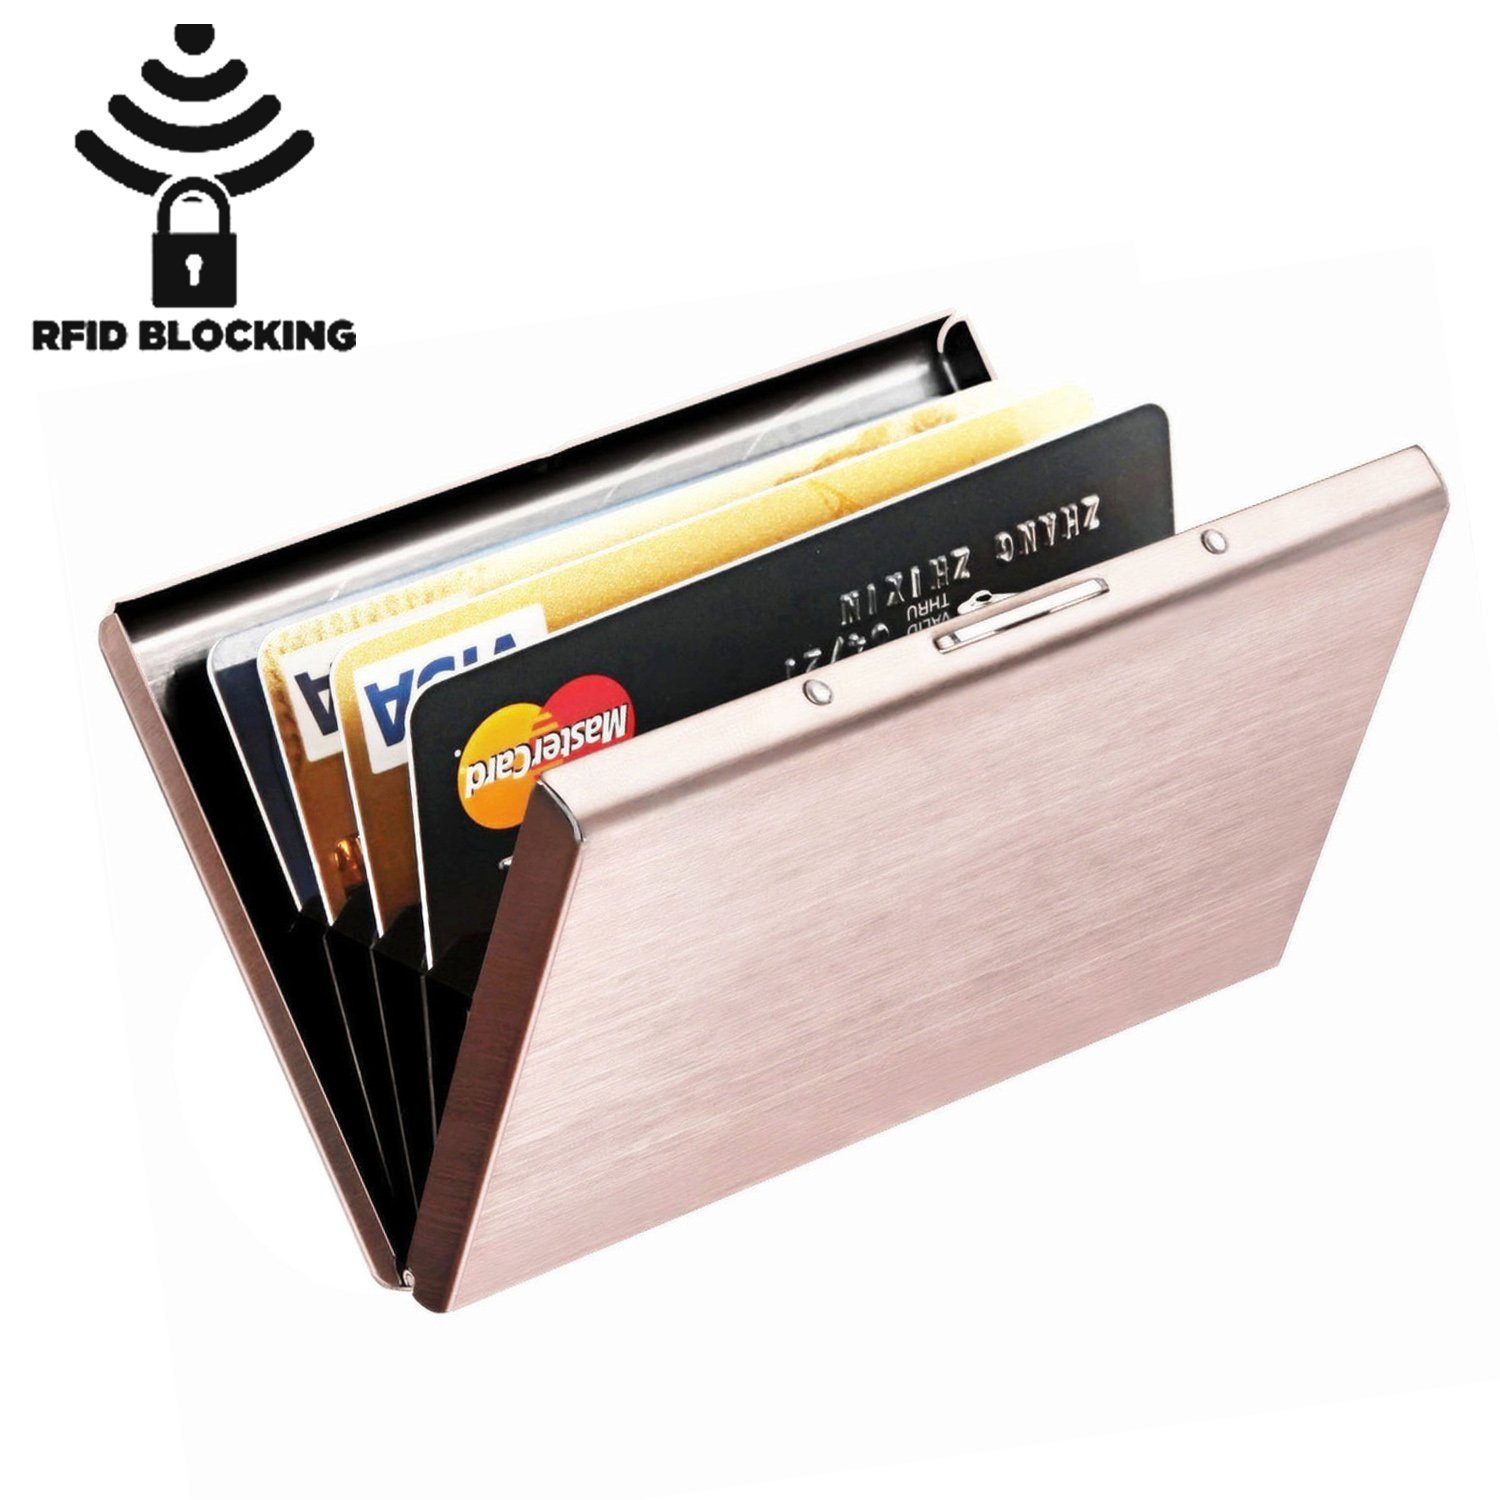 MaxGear RFID Blocking Credit Card Holder, Stainless Steel Card Holder Case for Travel and Work, Steel Metal Slim Wallet, Credit Card Case for Business Cards, Credit Cards,N-Rose Gold